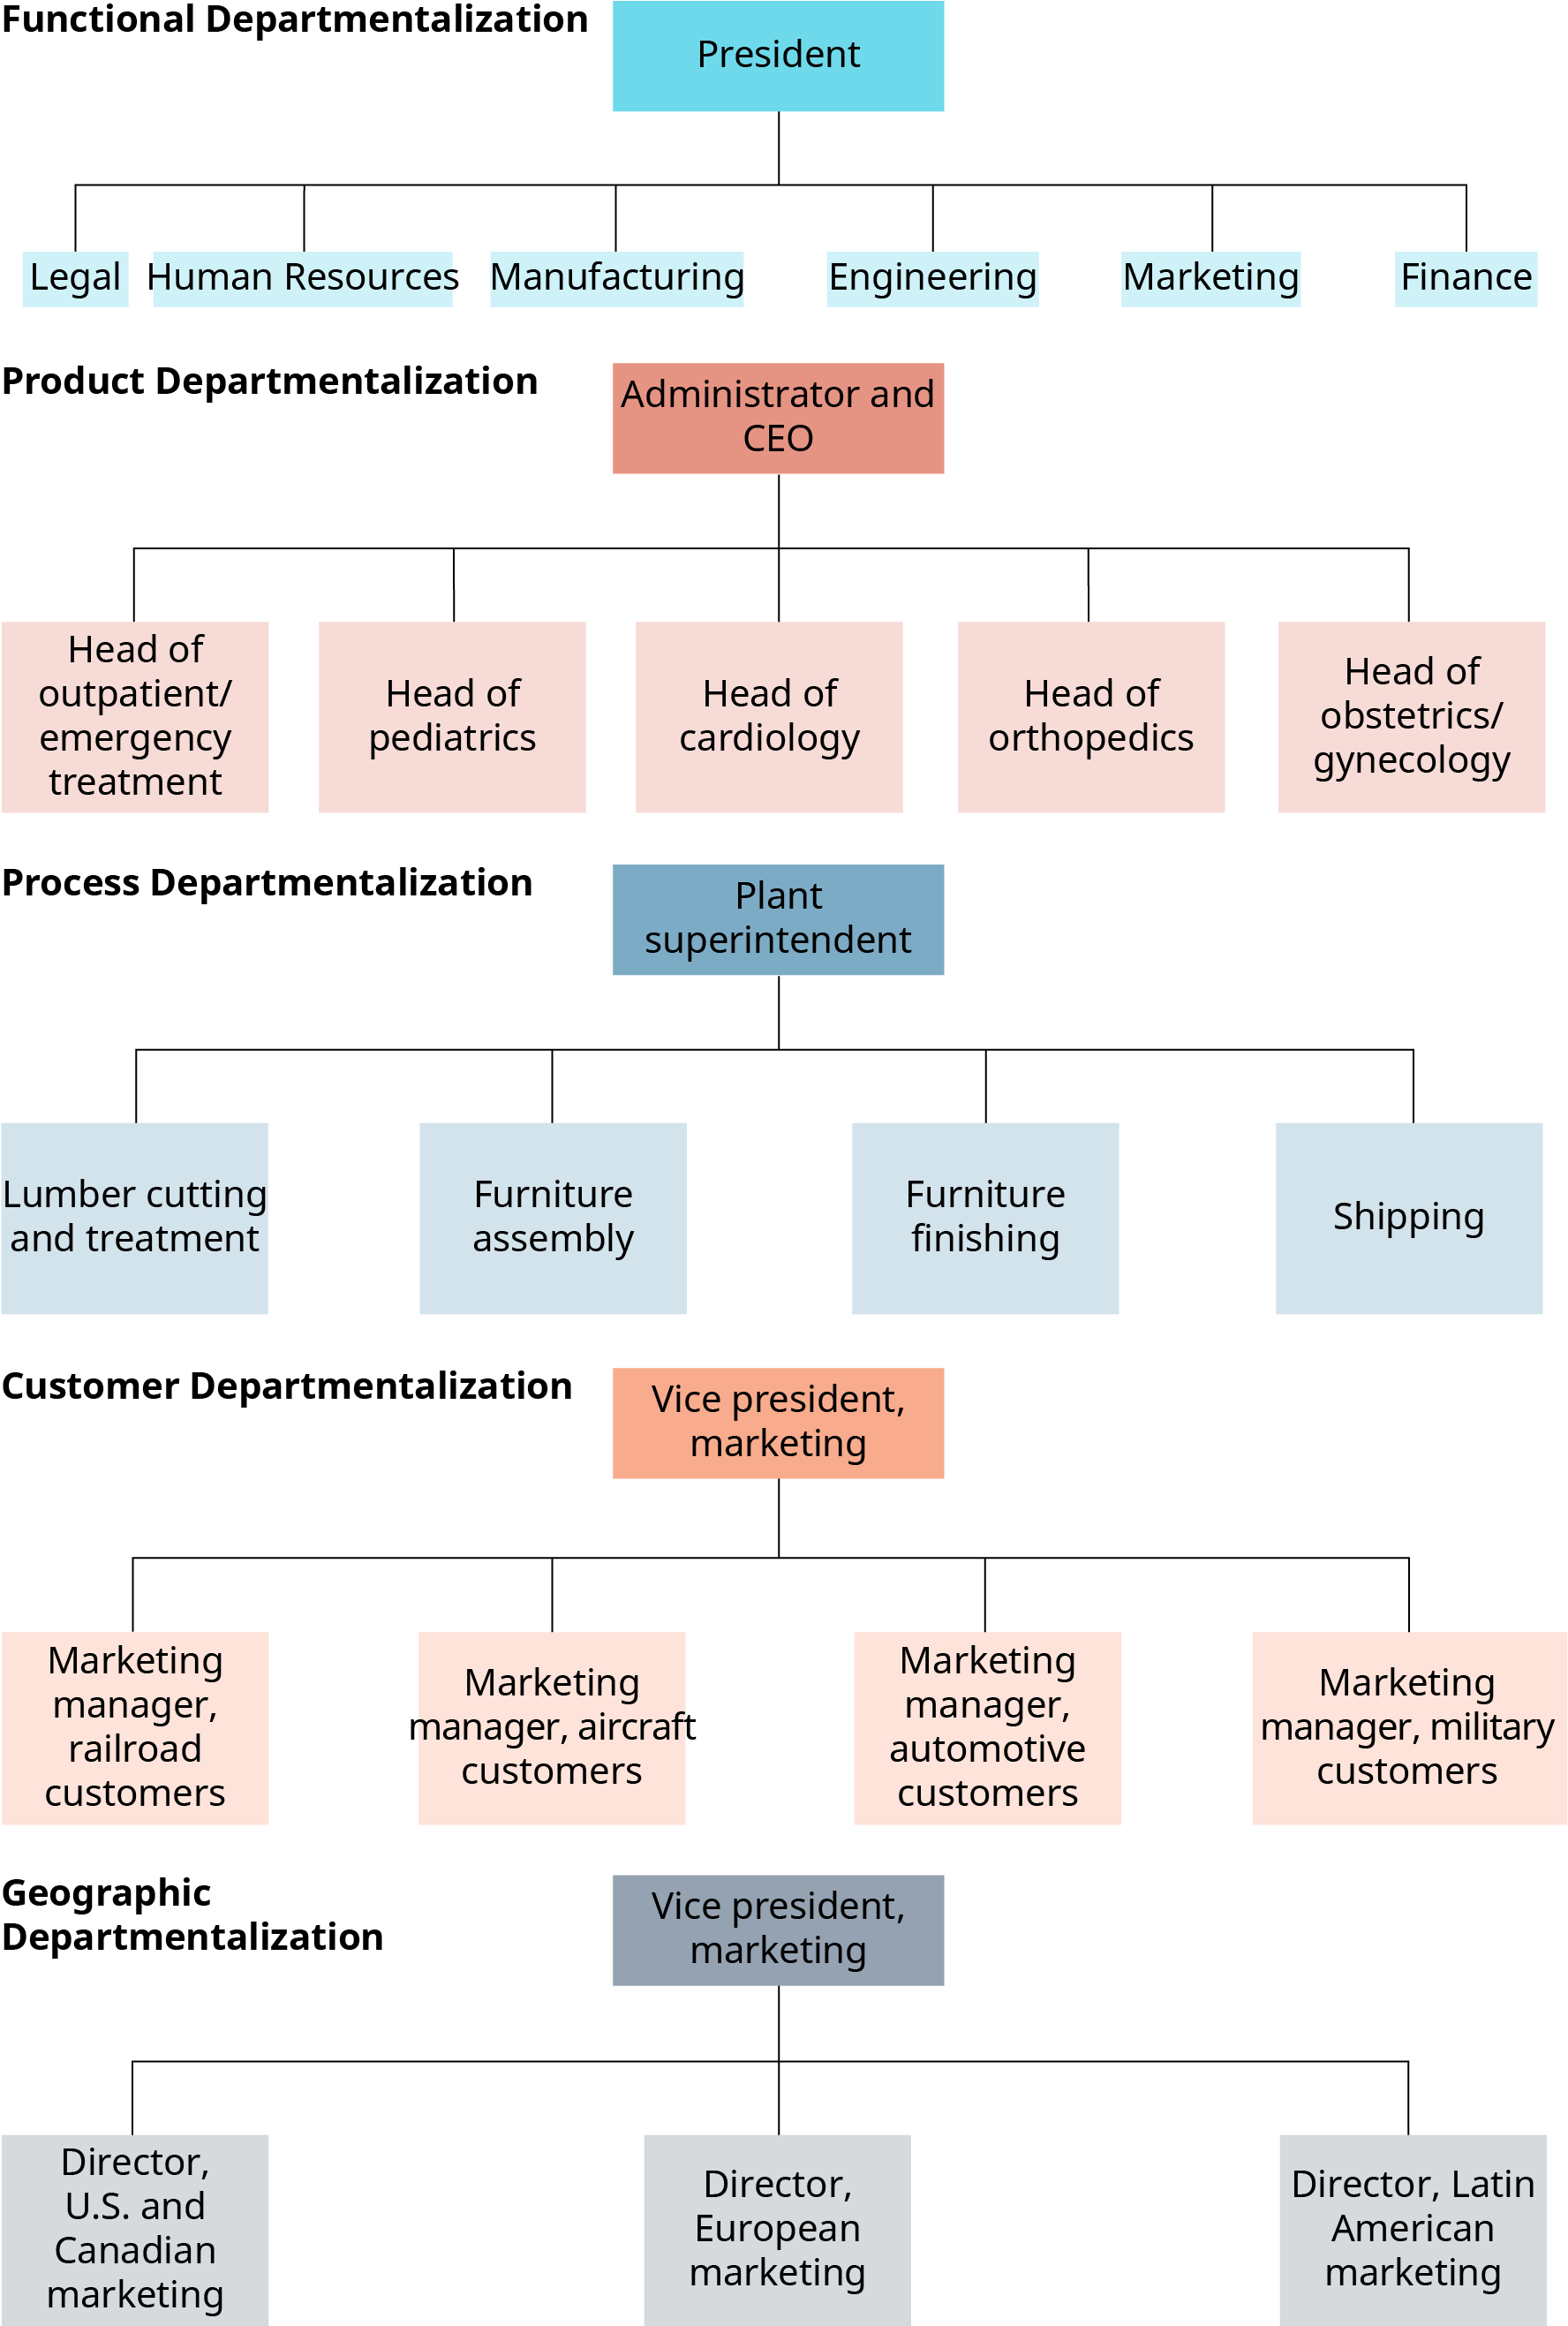 Functional departmentalization shows a president, with lines extending to legal, human resources, manufacturing, engineering, marketing, and finance. Product departmentalization shows an administrator and C E O, with lines extending to head of outpatient slash emergency treatment, head of pediatrics, head of cardiology, head of orthopedics, and head of obstetrics slash gynecology. Process departmentalization shows a plant superintendent with lines extending to lumber cutting and treatment, furniture assembly, furniture finishing, and shipping. Customer departmentalization shows the vice president of marketing, with lines extending to marketing manager, railroad customers; and marketing manager, aircraft customers; and marketing manager, automotive customers, and marketing manager, military customers. Geographic departmentalization shows the vice president of marketing, with lines extending to the director, U S and Canadian marketing; and director, European marketing; and director, Latin American marketing.